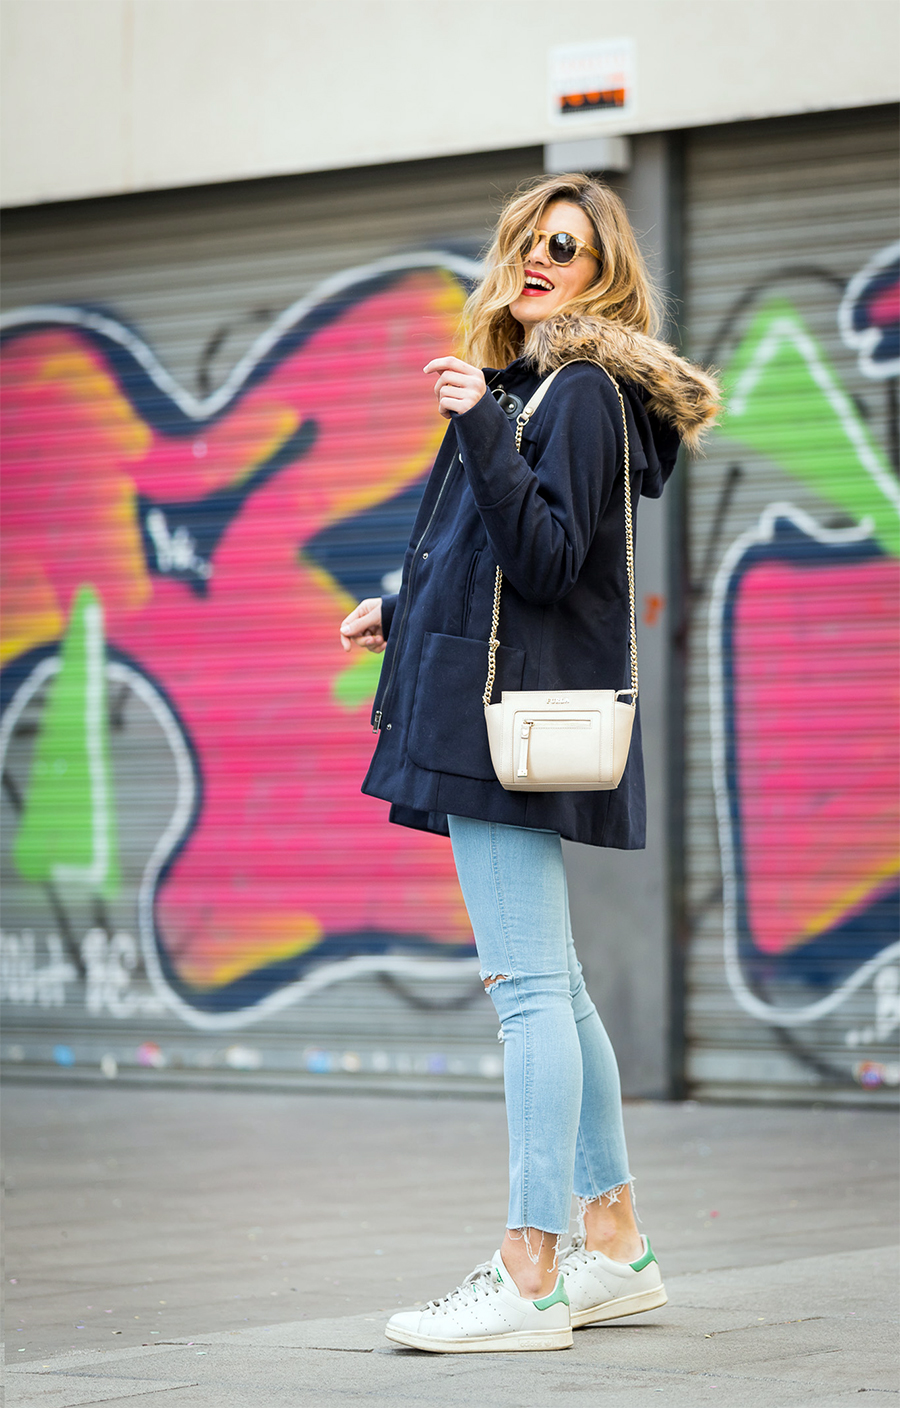 romwe-outfit_winter-outfit_look-para-días-frios